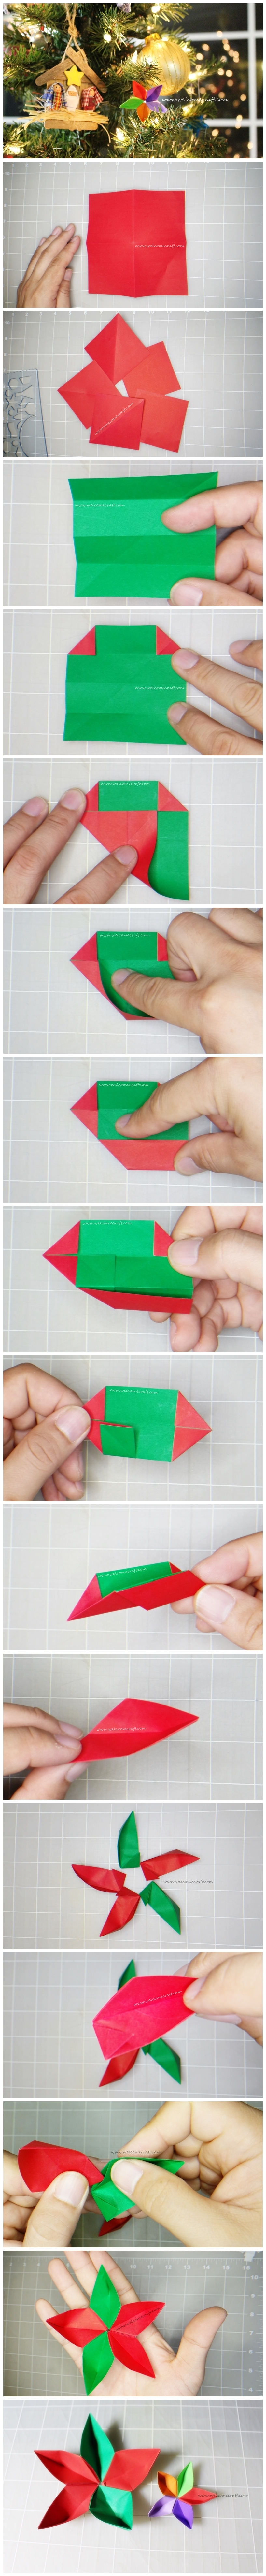 How To Make Christmas Flower Poinsettias Ornament Origami Instructions